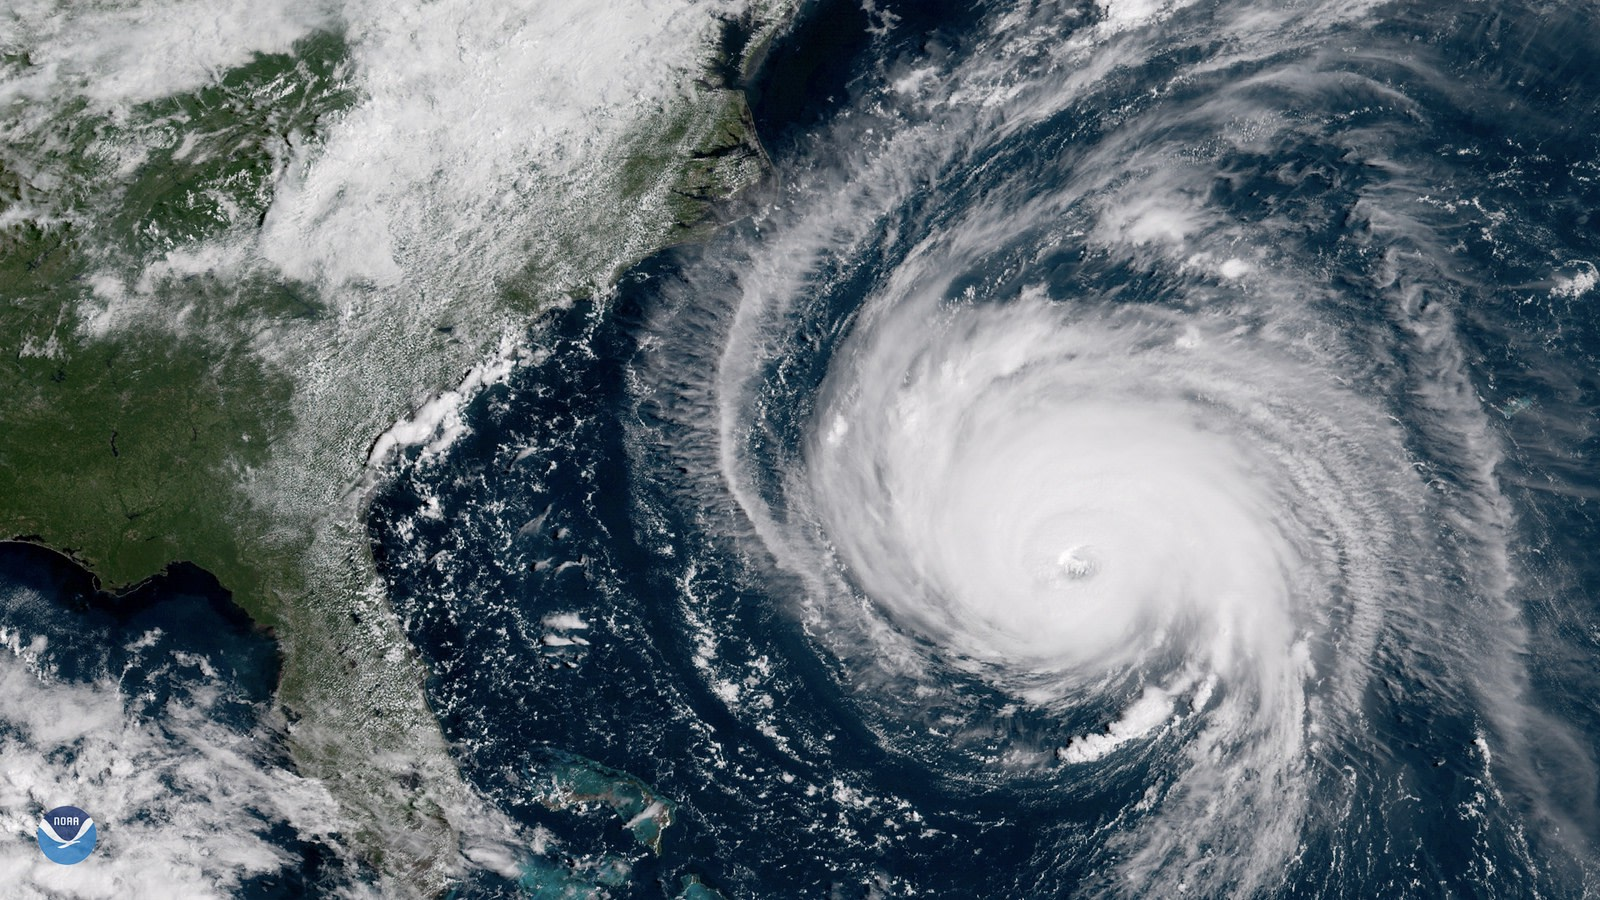 """Florence off the East Coast"" by Stuart Rankin (CC BY-NC 2.0)"